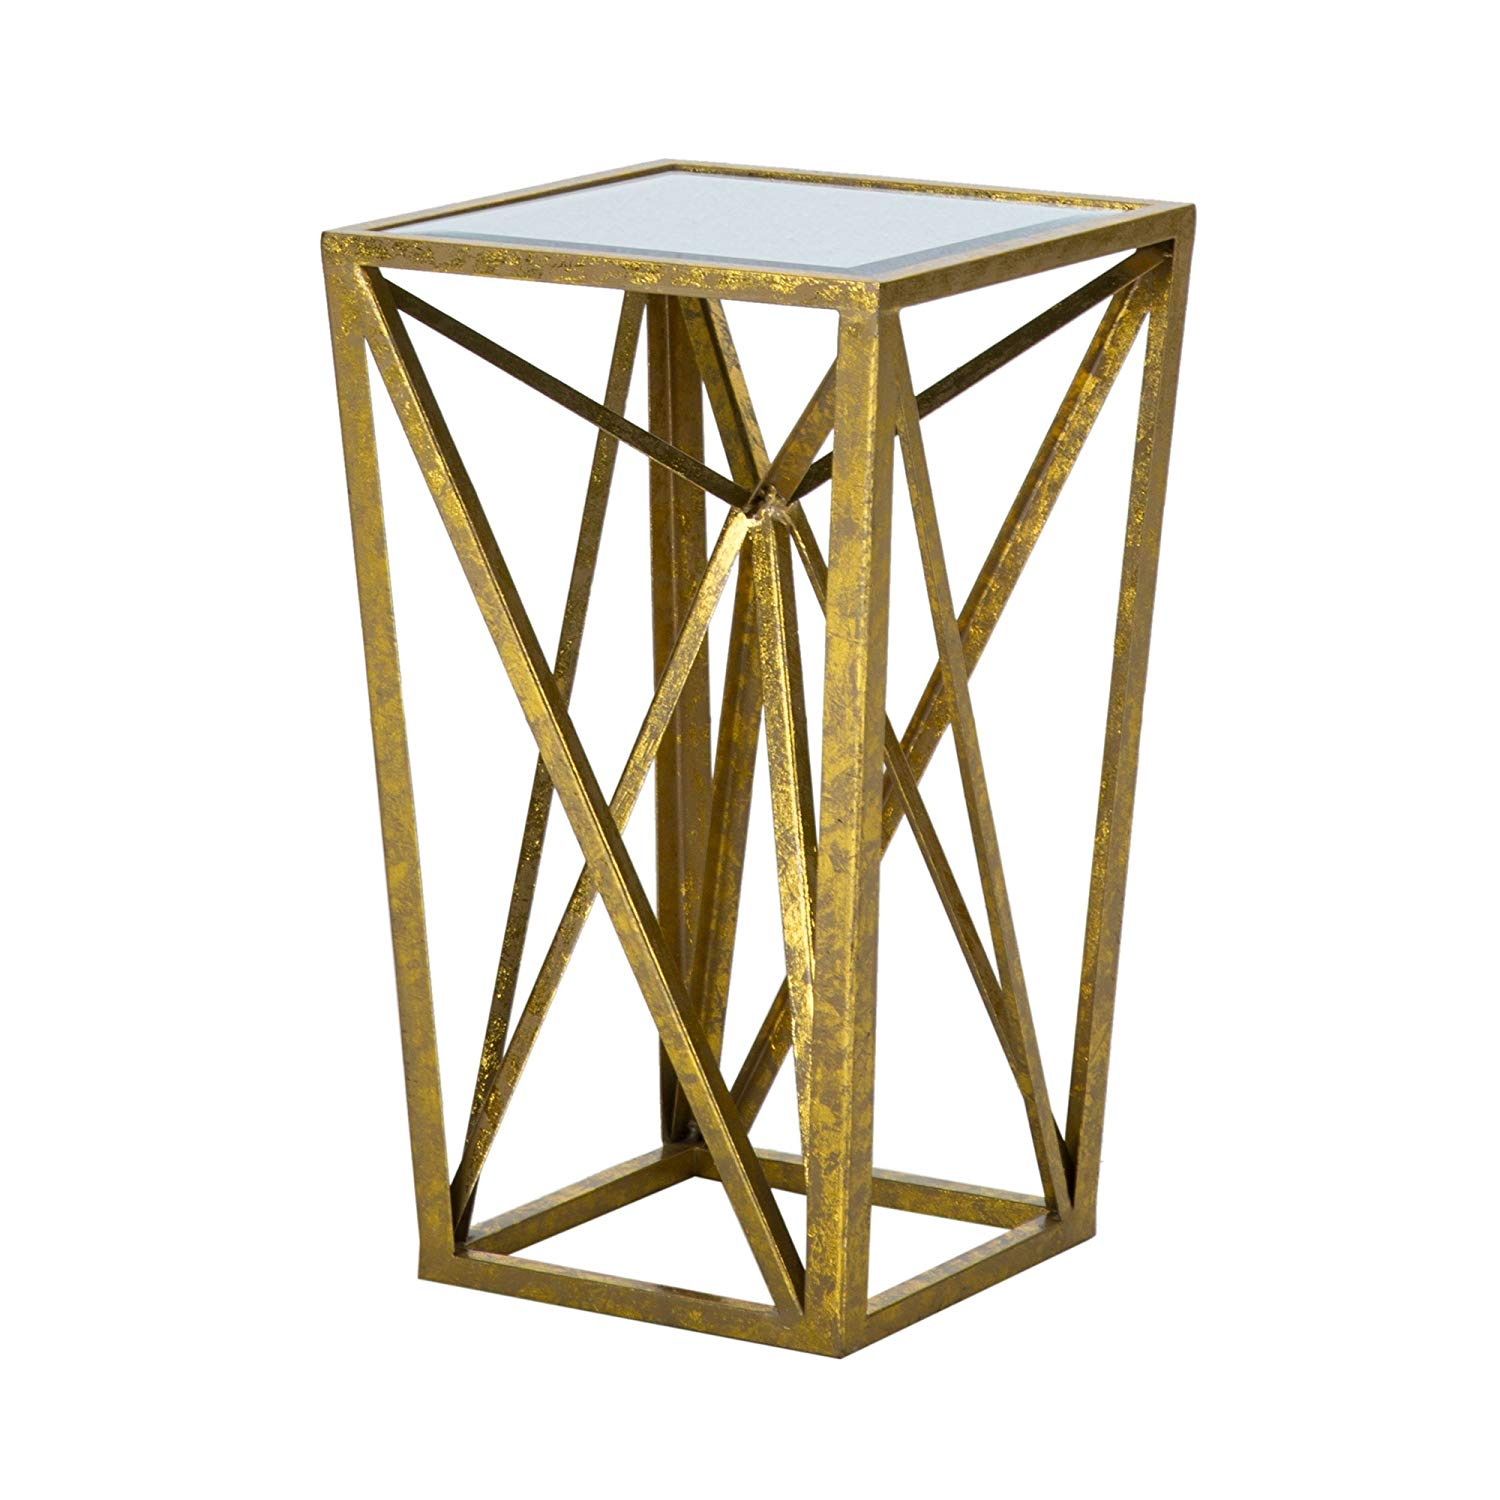 madison park zee accent tables mirror glass metal table drum side gold angular design modern style end piece top hollow round monarch specialties with door homesense chairs